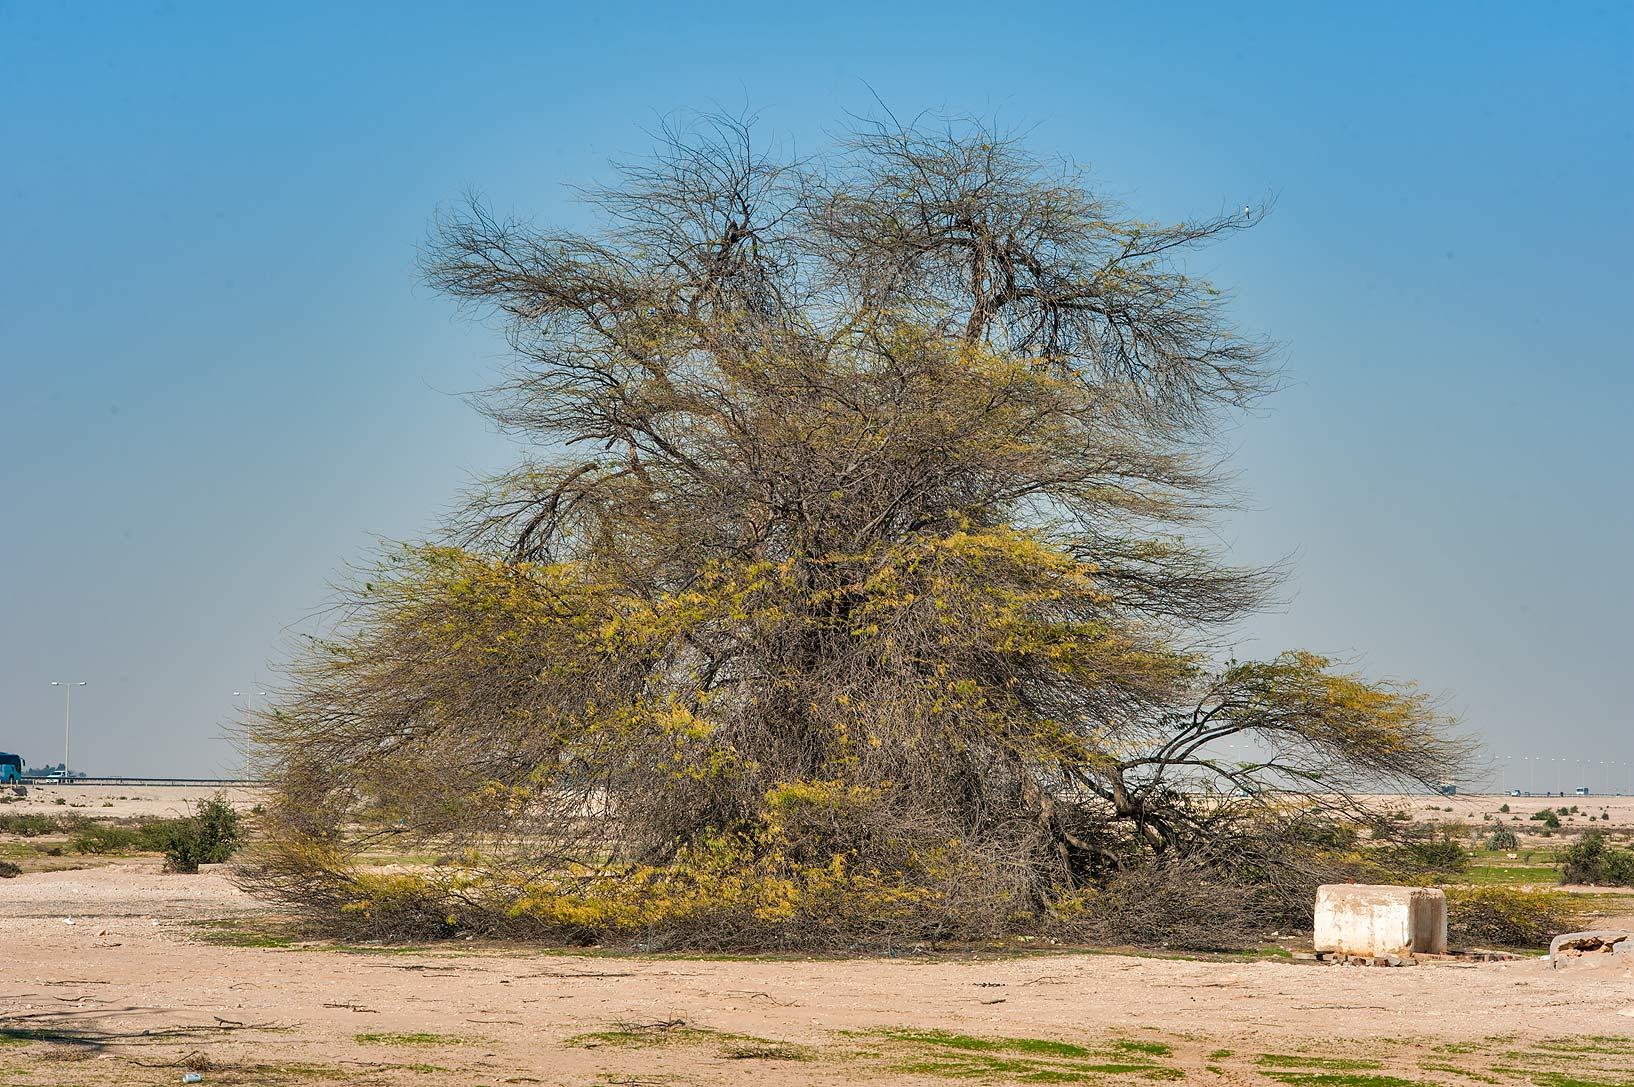 Old mesquite tree (Prosopis juliflora) near...Husayn Water Well near Simaisma. Qatar